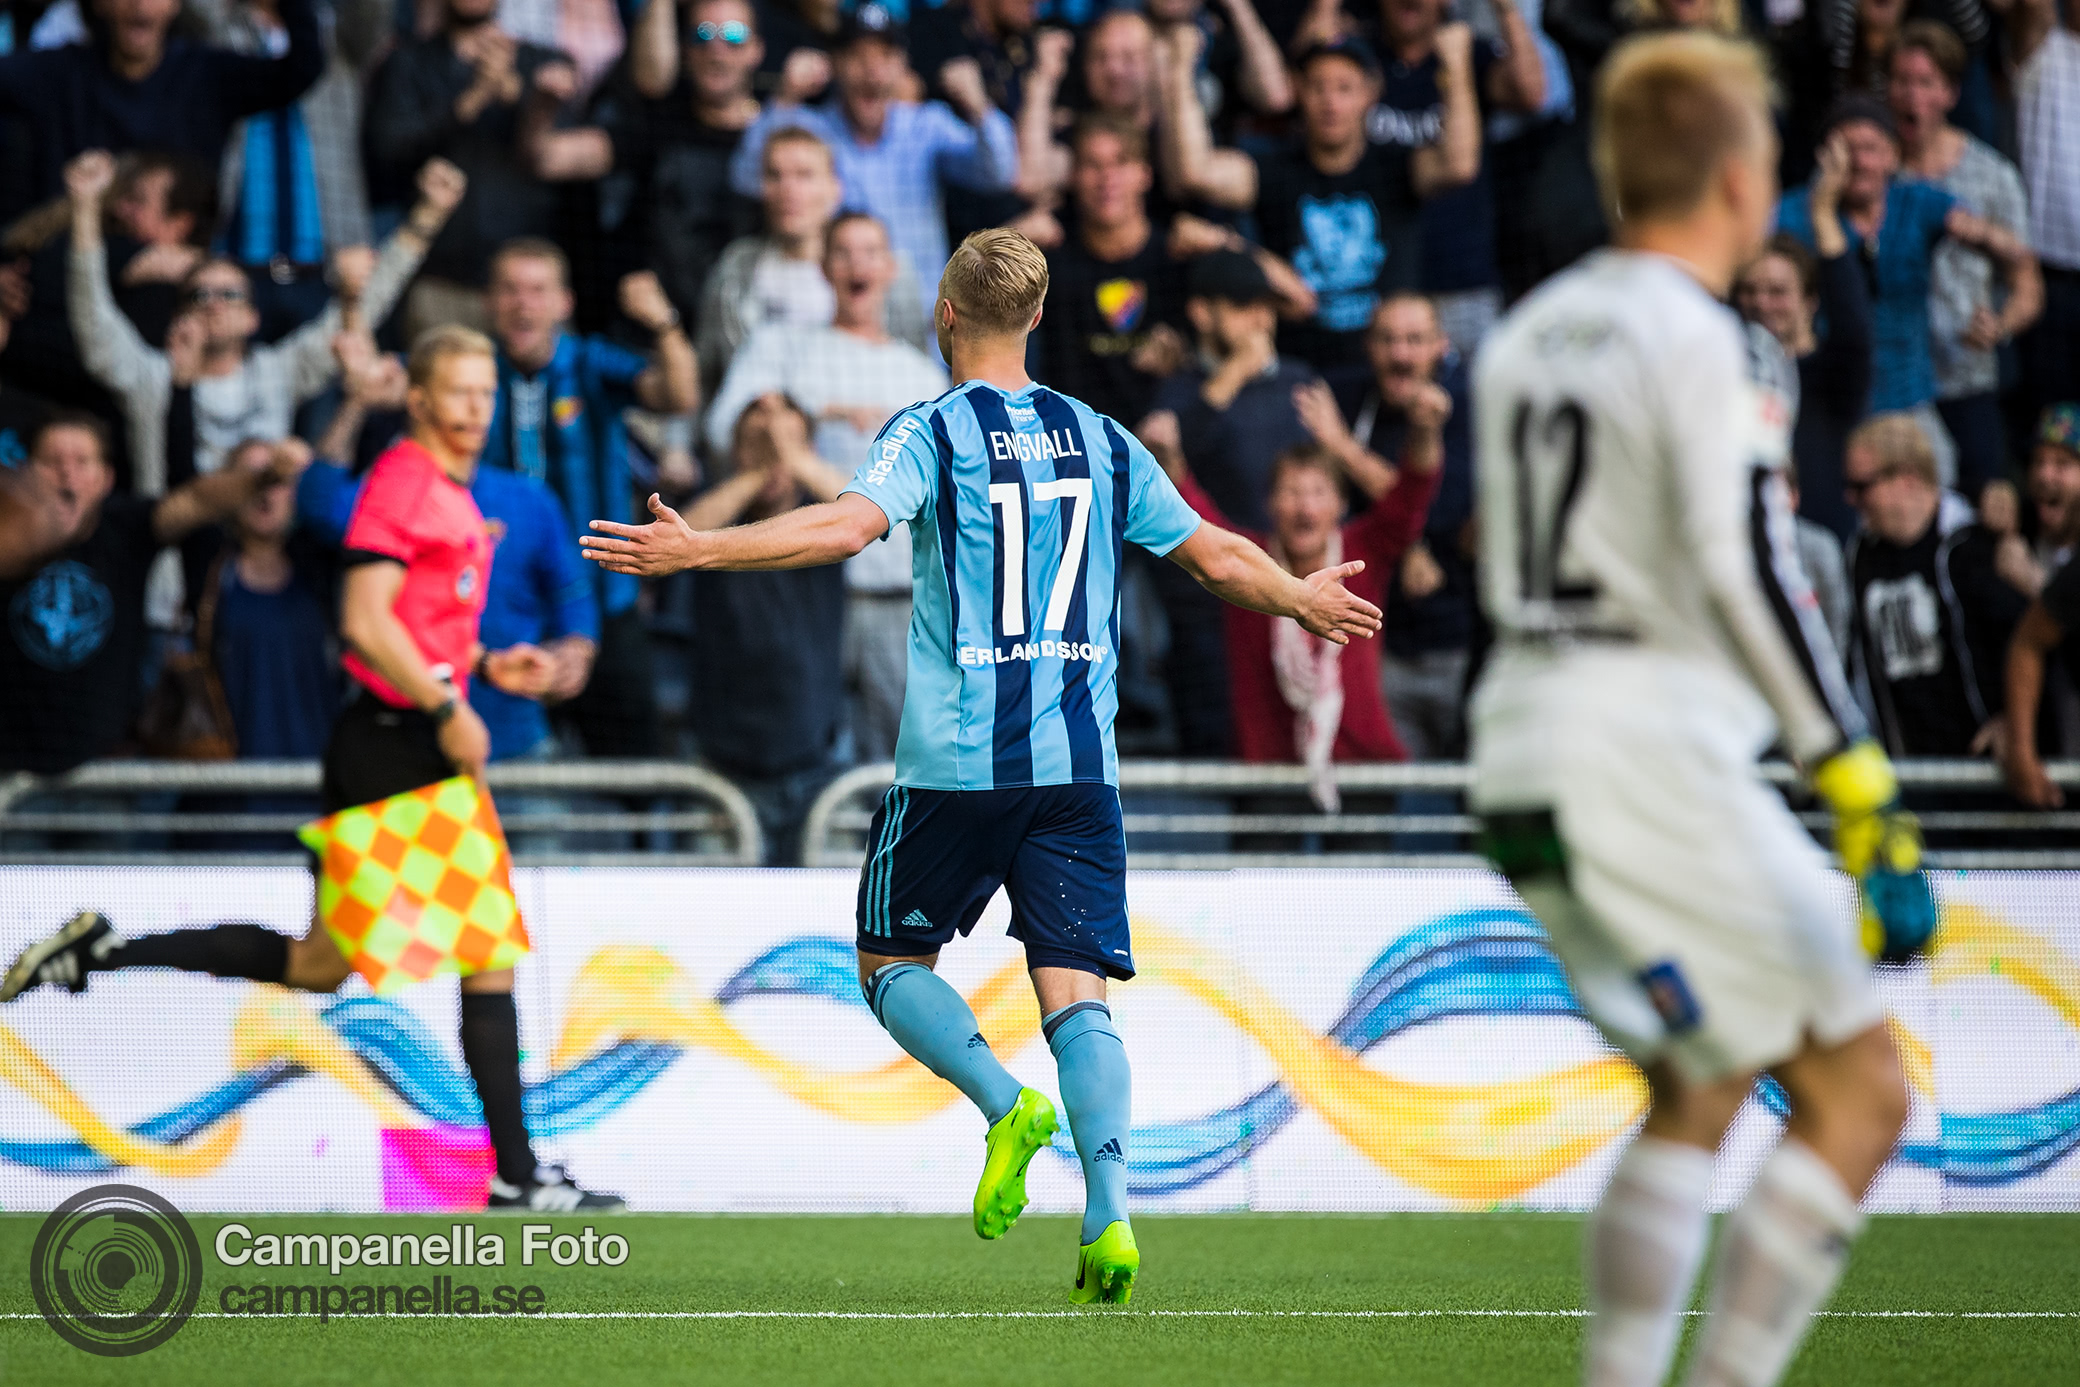 Engvall leads Djurgården to win against Halmstad - Michael Campanella Photography